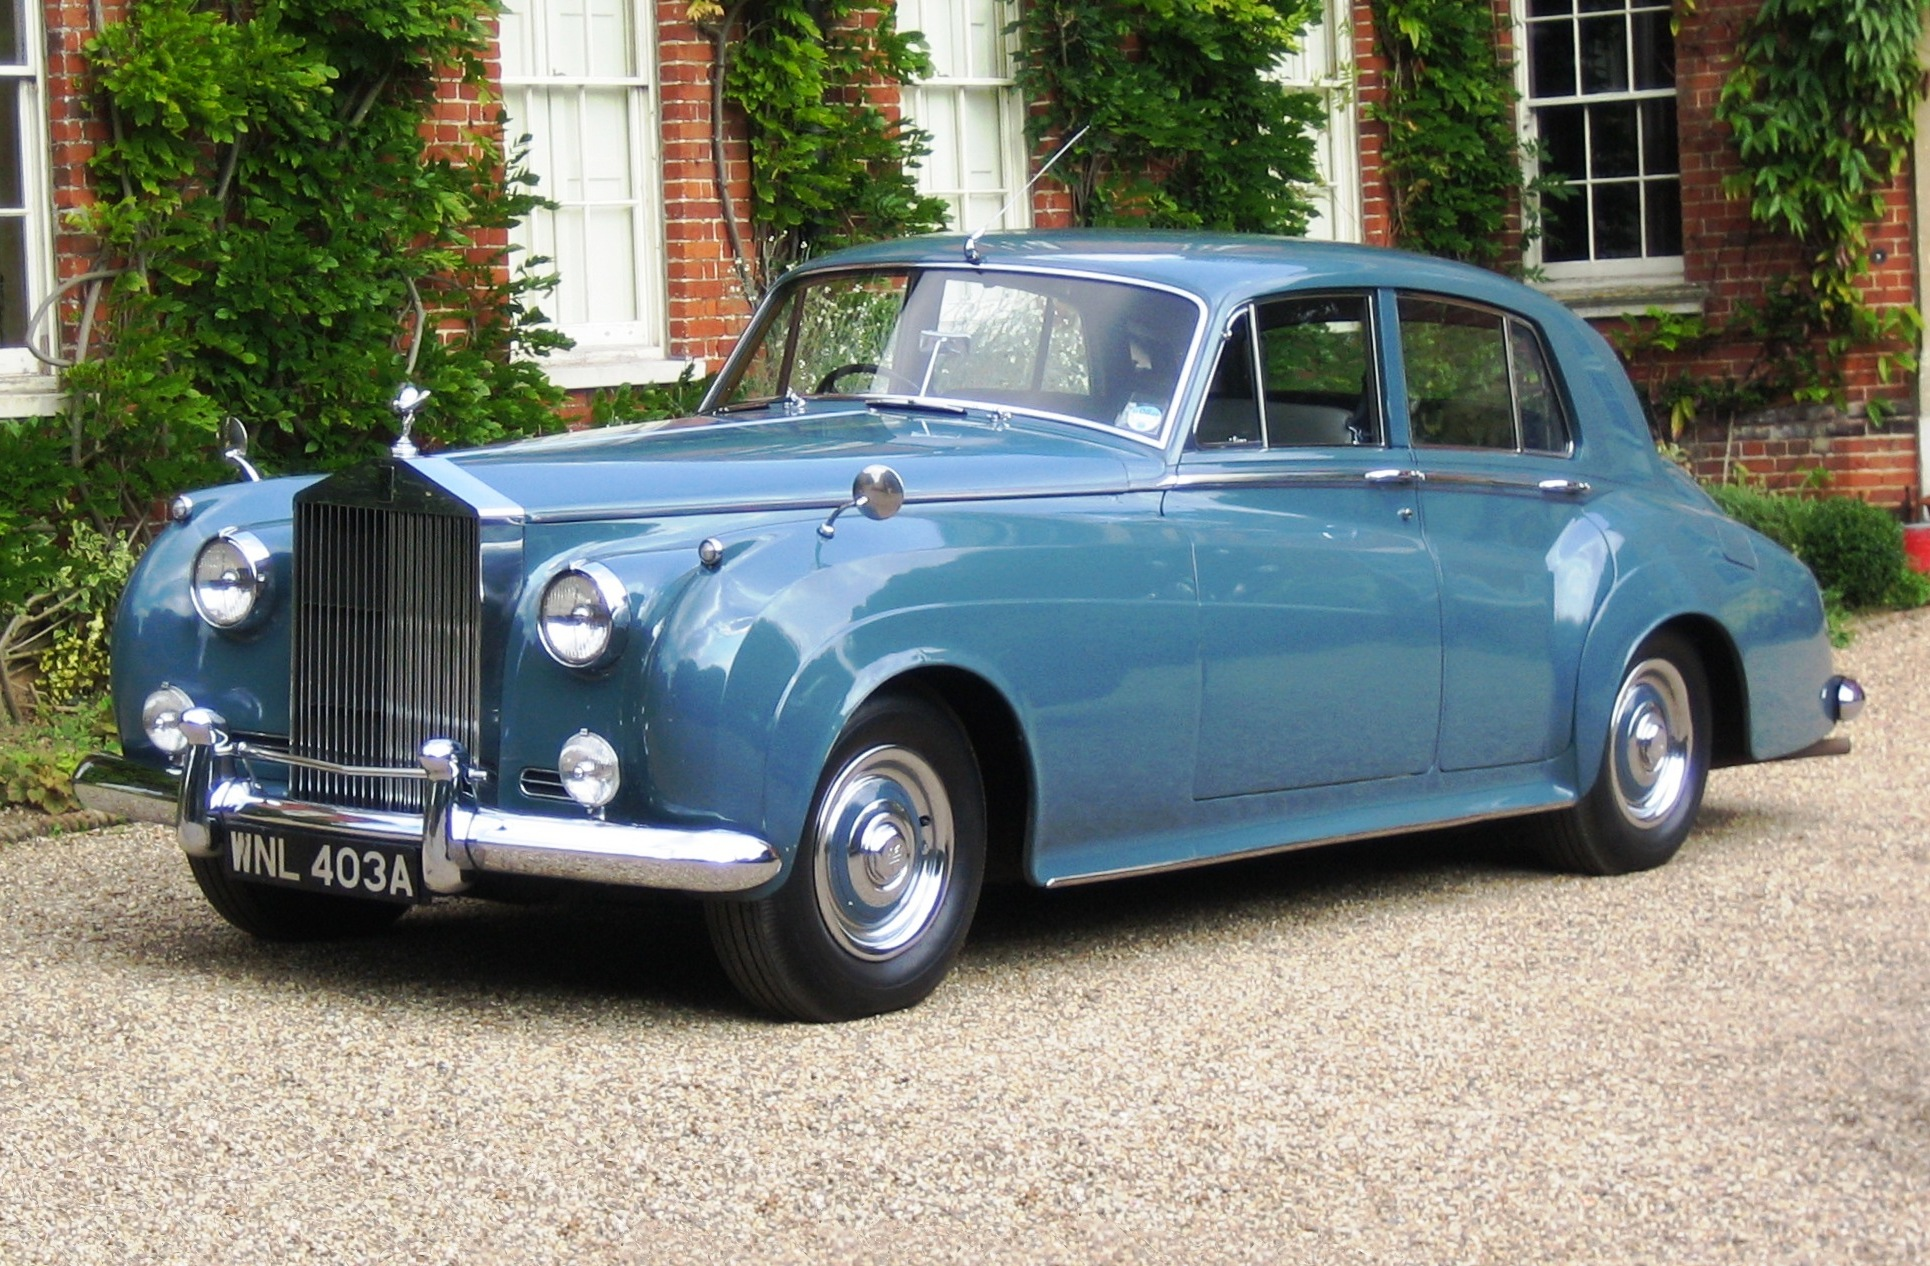 http://upload.wikimedia.org/wikipedia/commons/3/31/Rolls_Royce_Silver_Cloud_I_1956_licence_plate_1963_Castle_Hedingham_2008.JPG